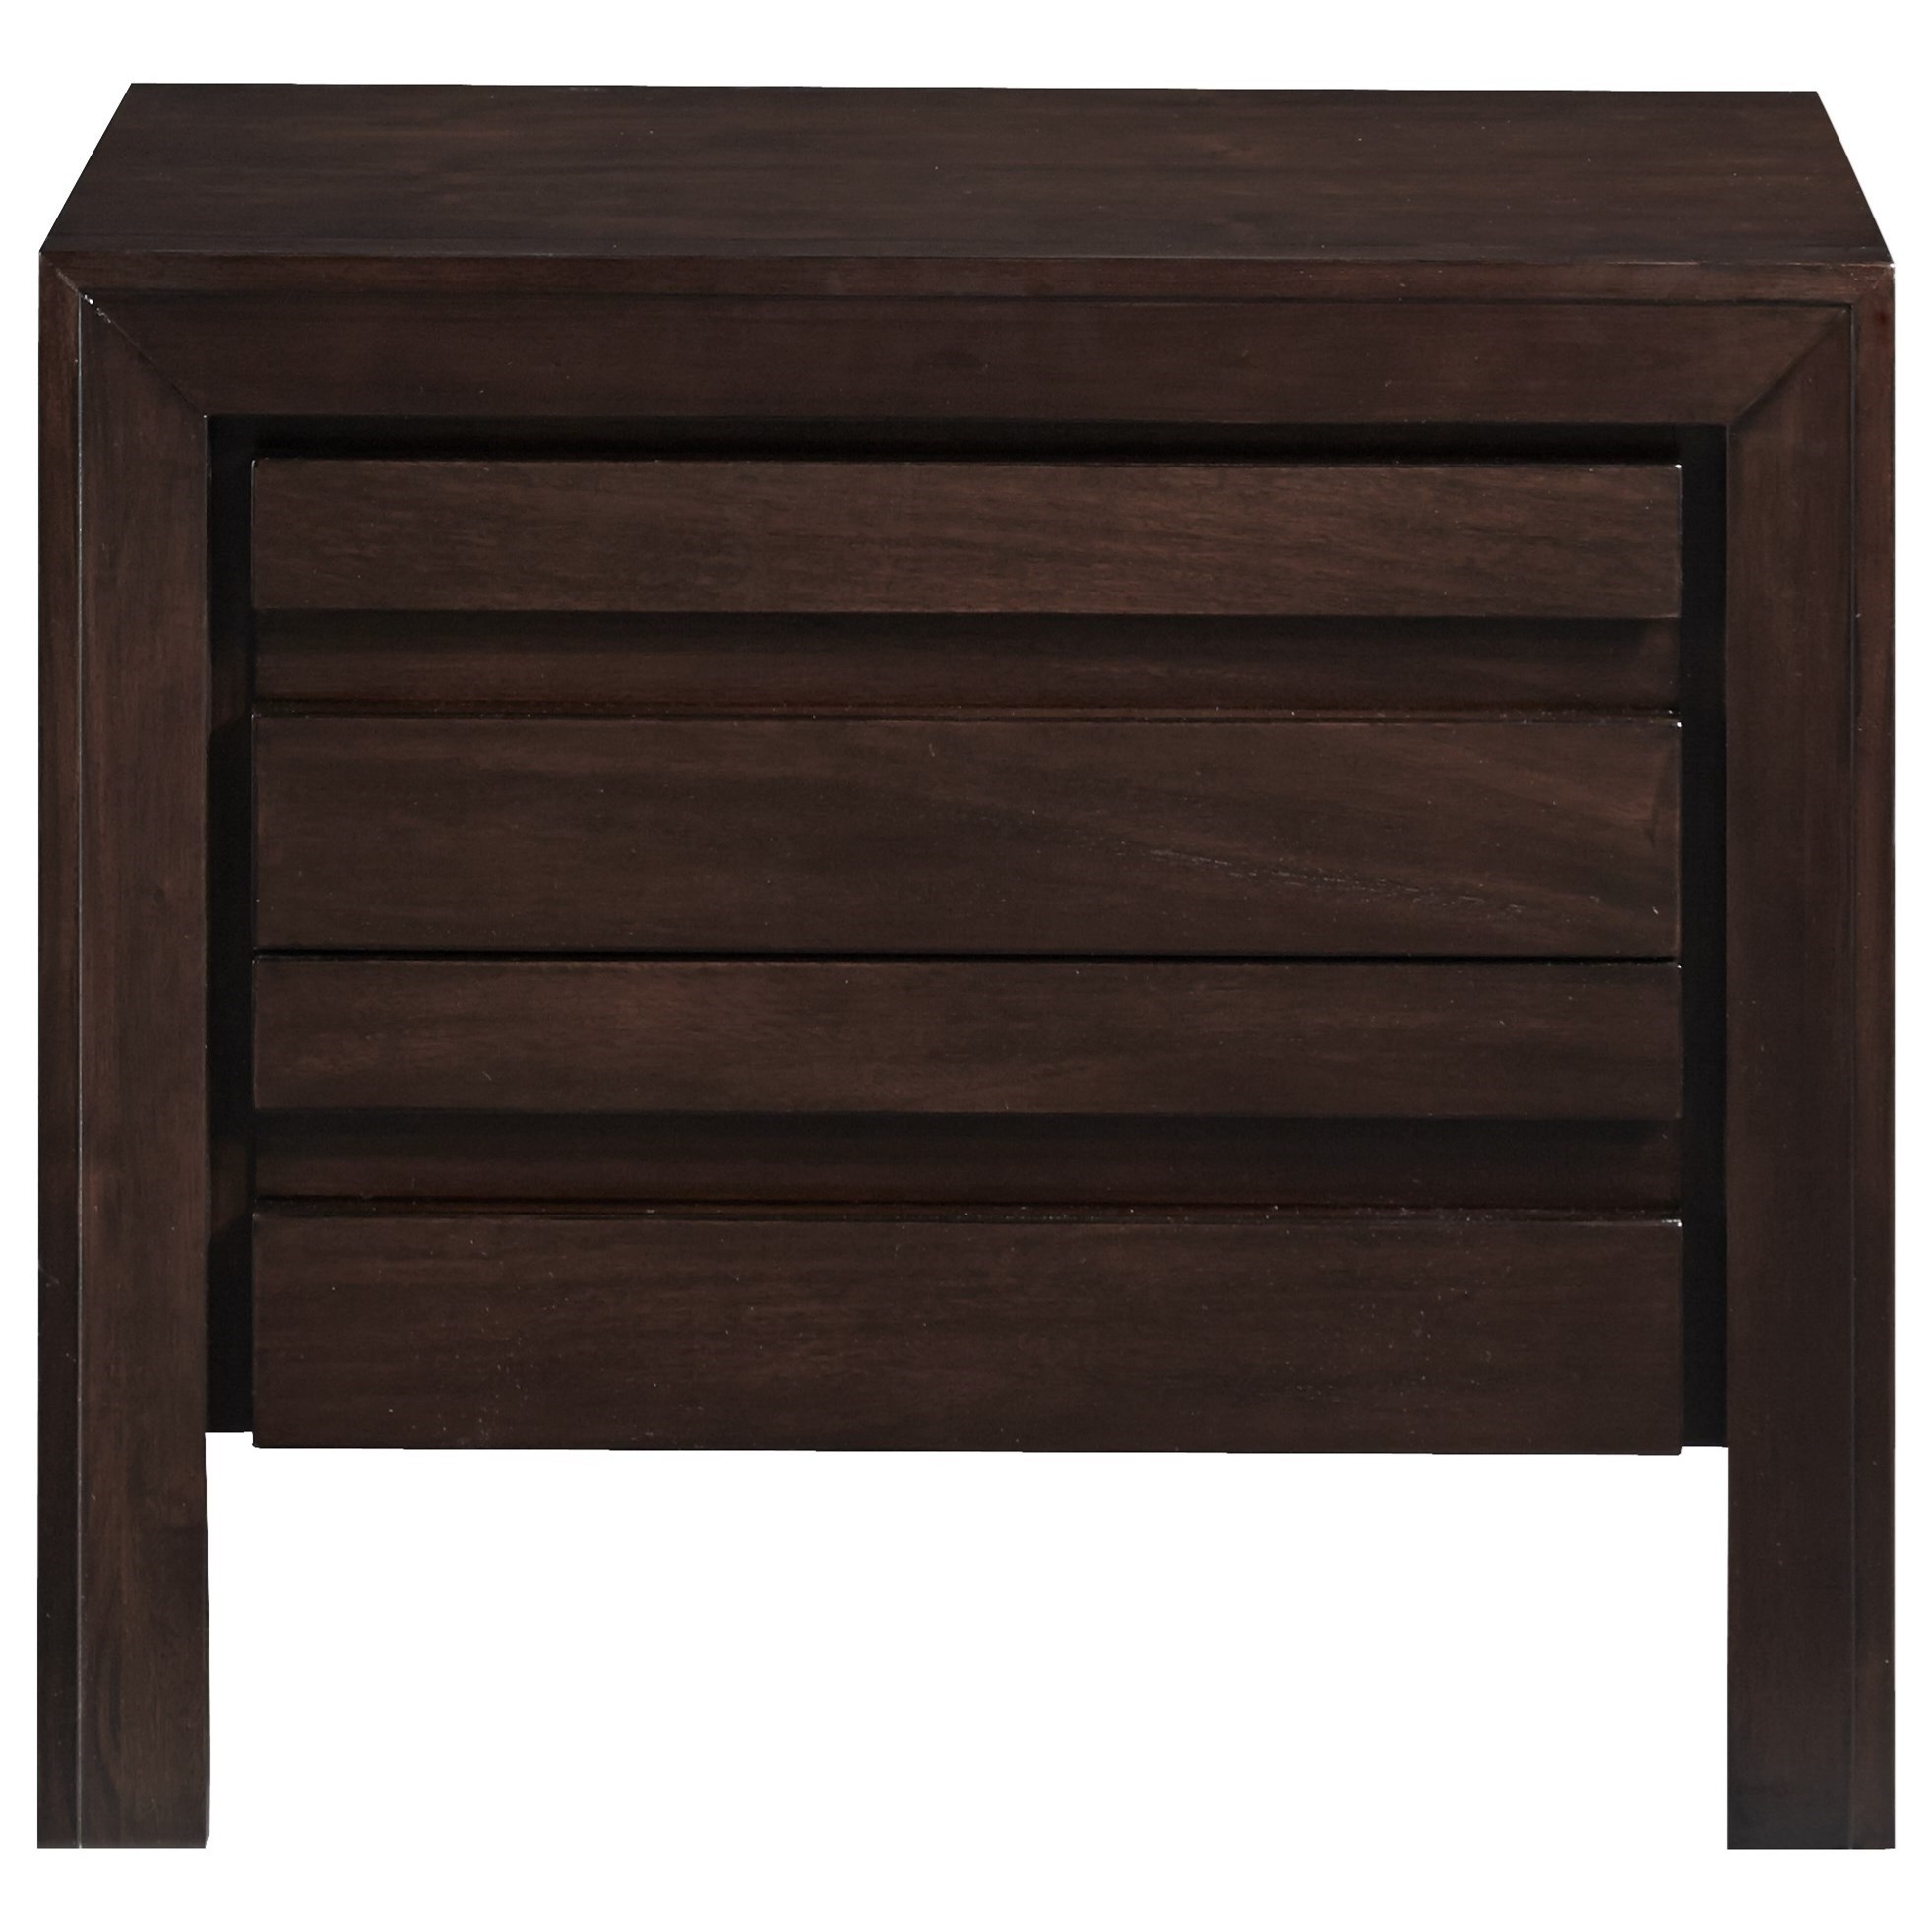 Element 2 Drawer Nightstand by Modus International at Red Knot